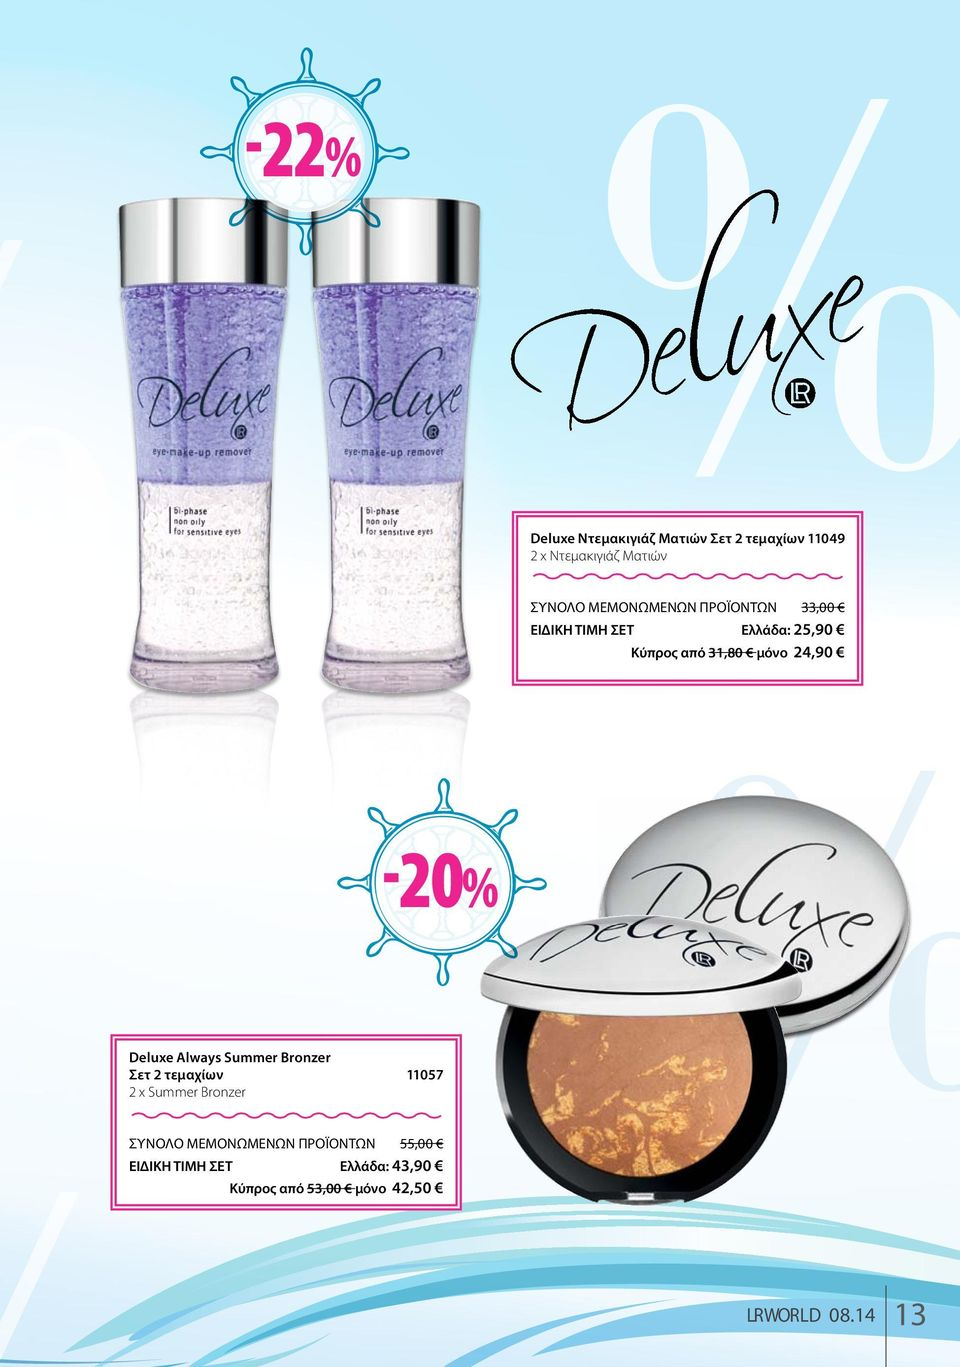 Deluxe Always Summer Bronzer Σετ 2 τεμαχίων 11057 2 x Summer Bronzer ΠΡOΪΟΝΤΩΝ